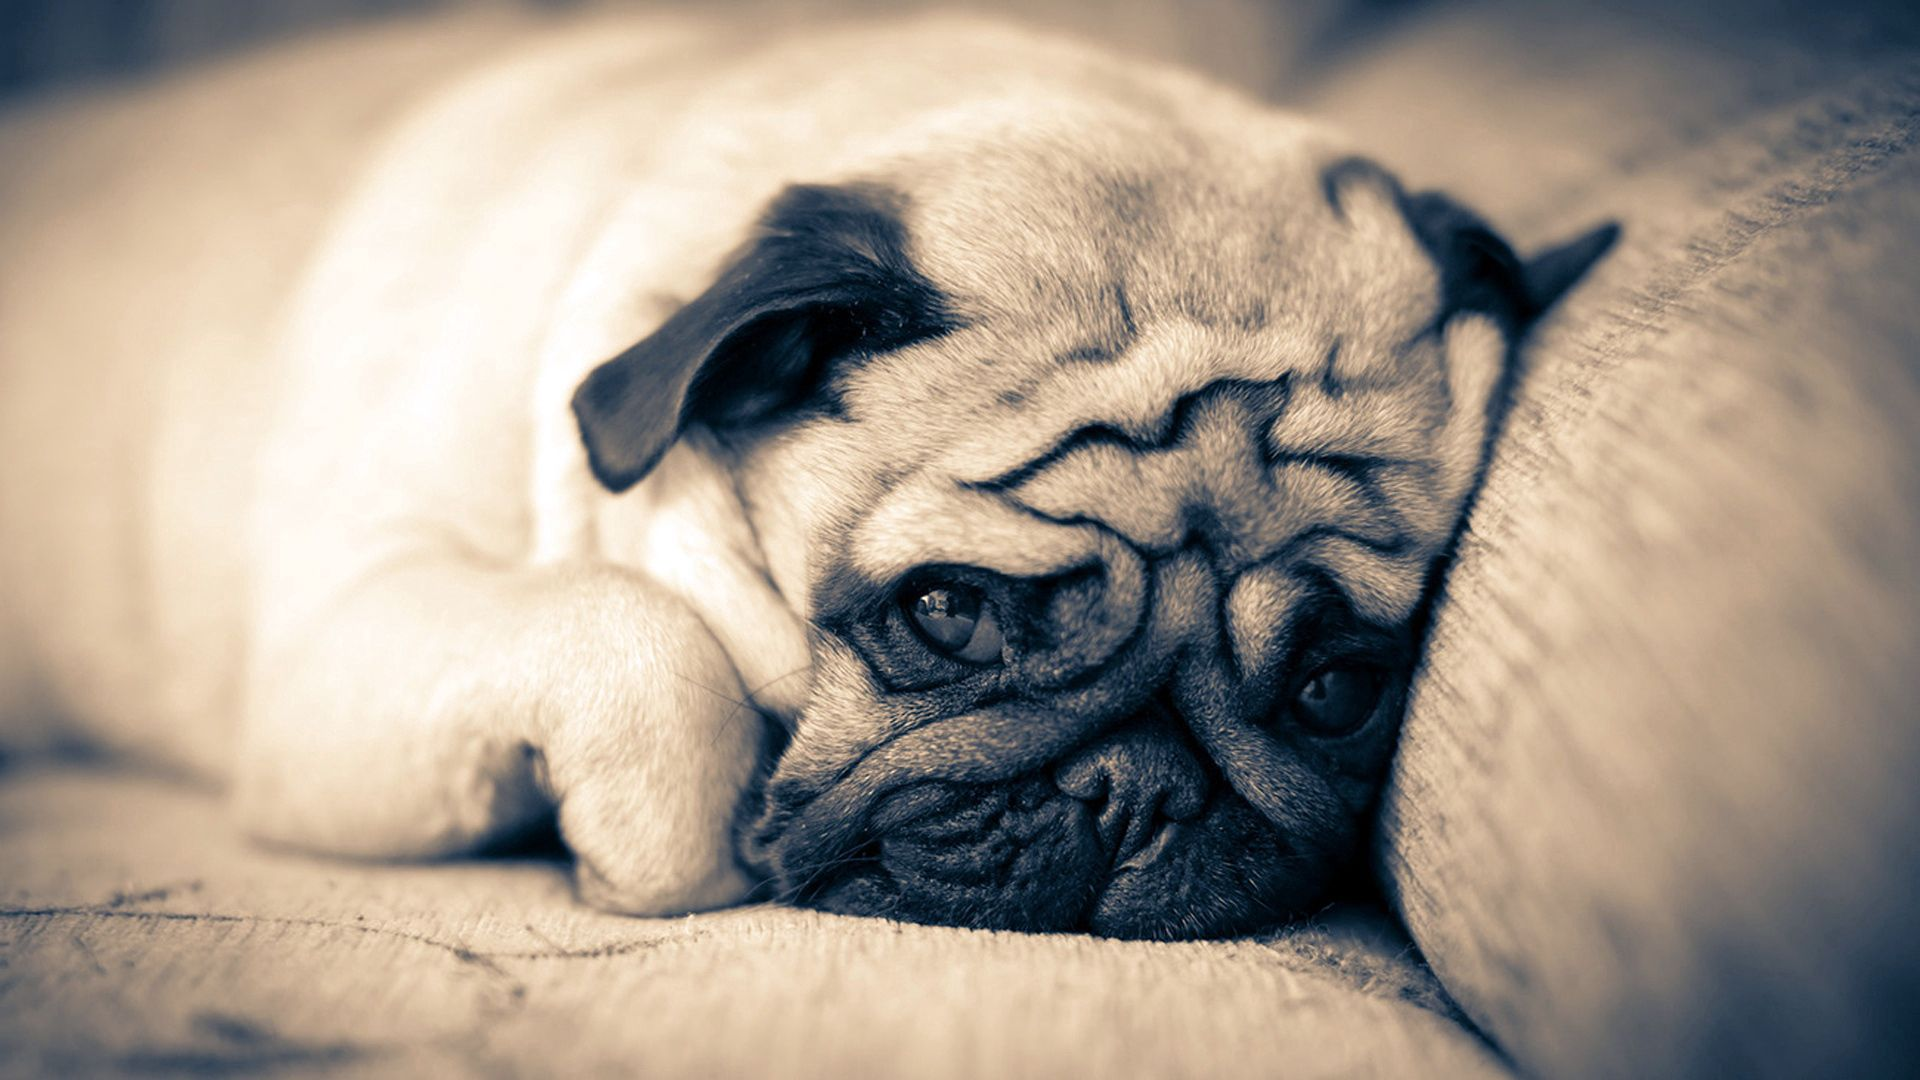 132489 download wallpaper Animals, Pug, To Lie Down, Lie, Sleep, Dream, Muzzle screensavers and pictures for free